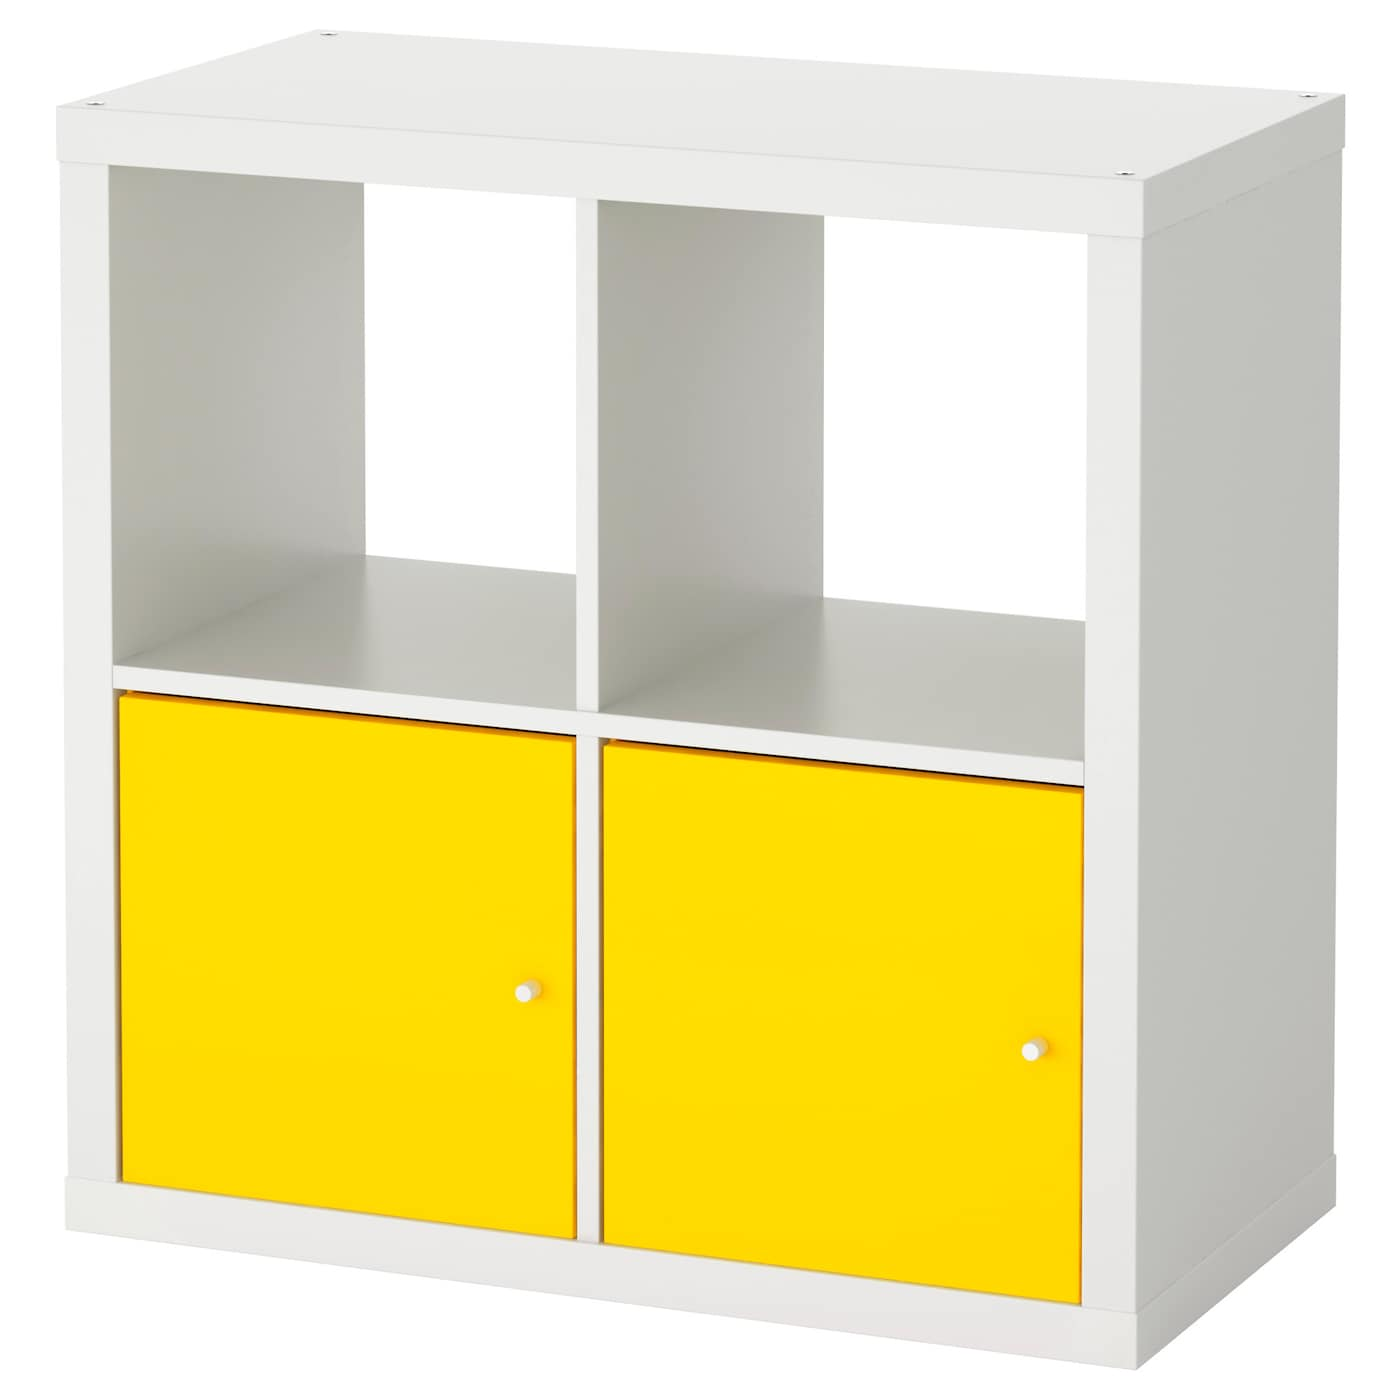 Kallax shelving unit with doors white yellow 77x77 cm ikea for Sideboard 35 cm tief